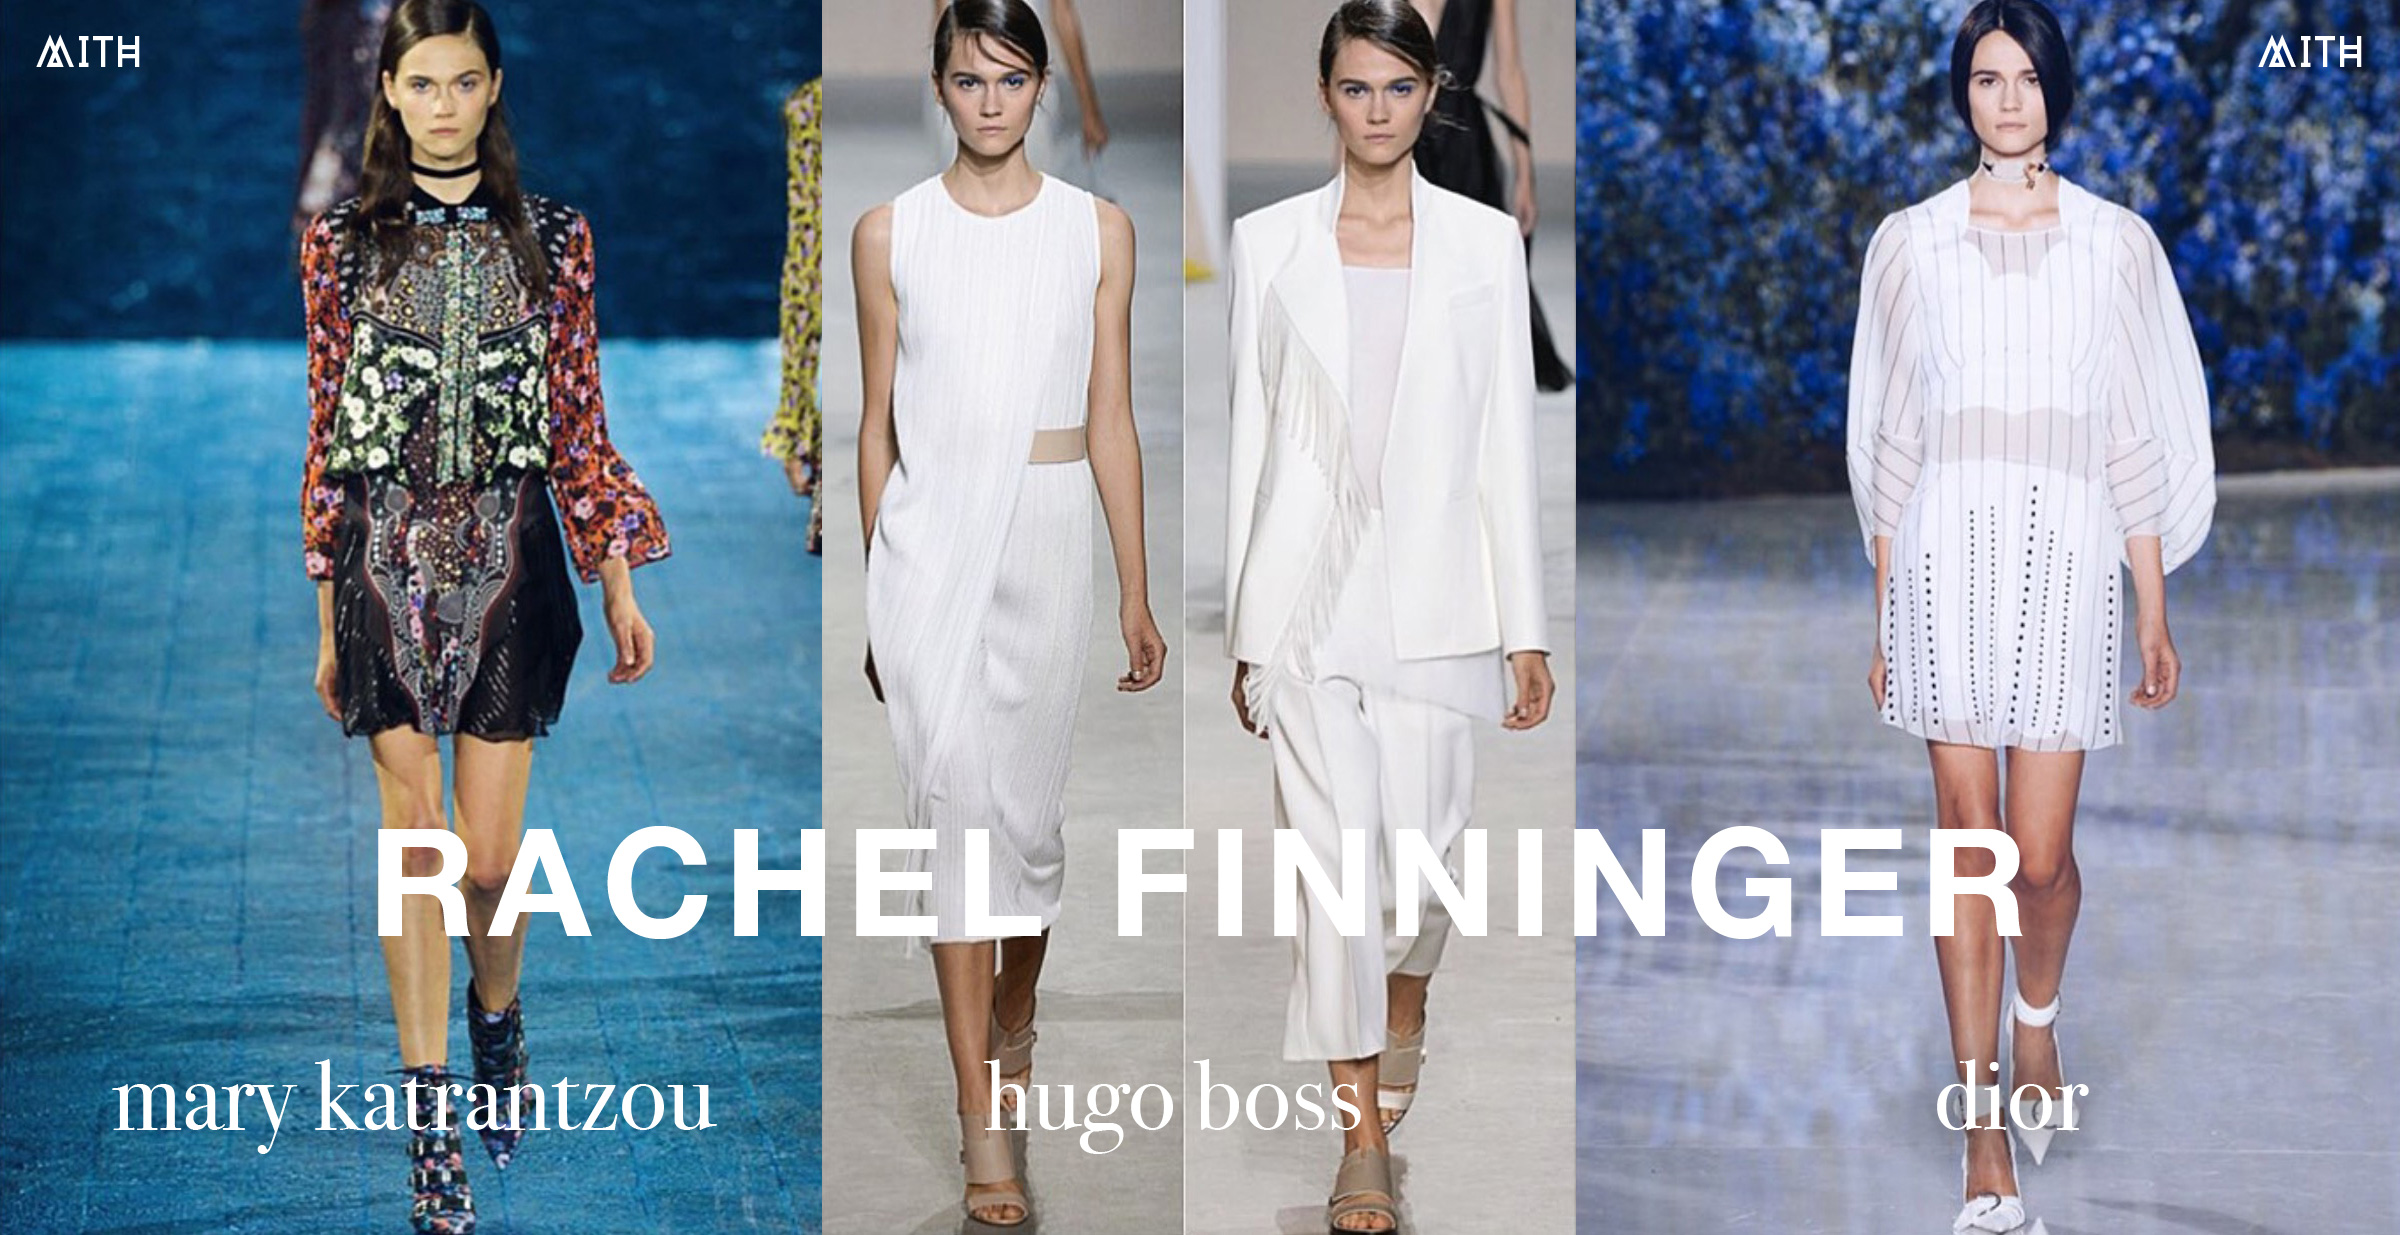 MITH Rachel Finninger Interview - Hugo Boss, Dior, Mary Katrantzou